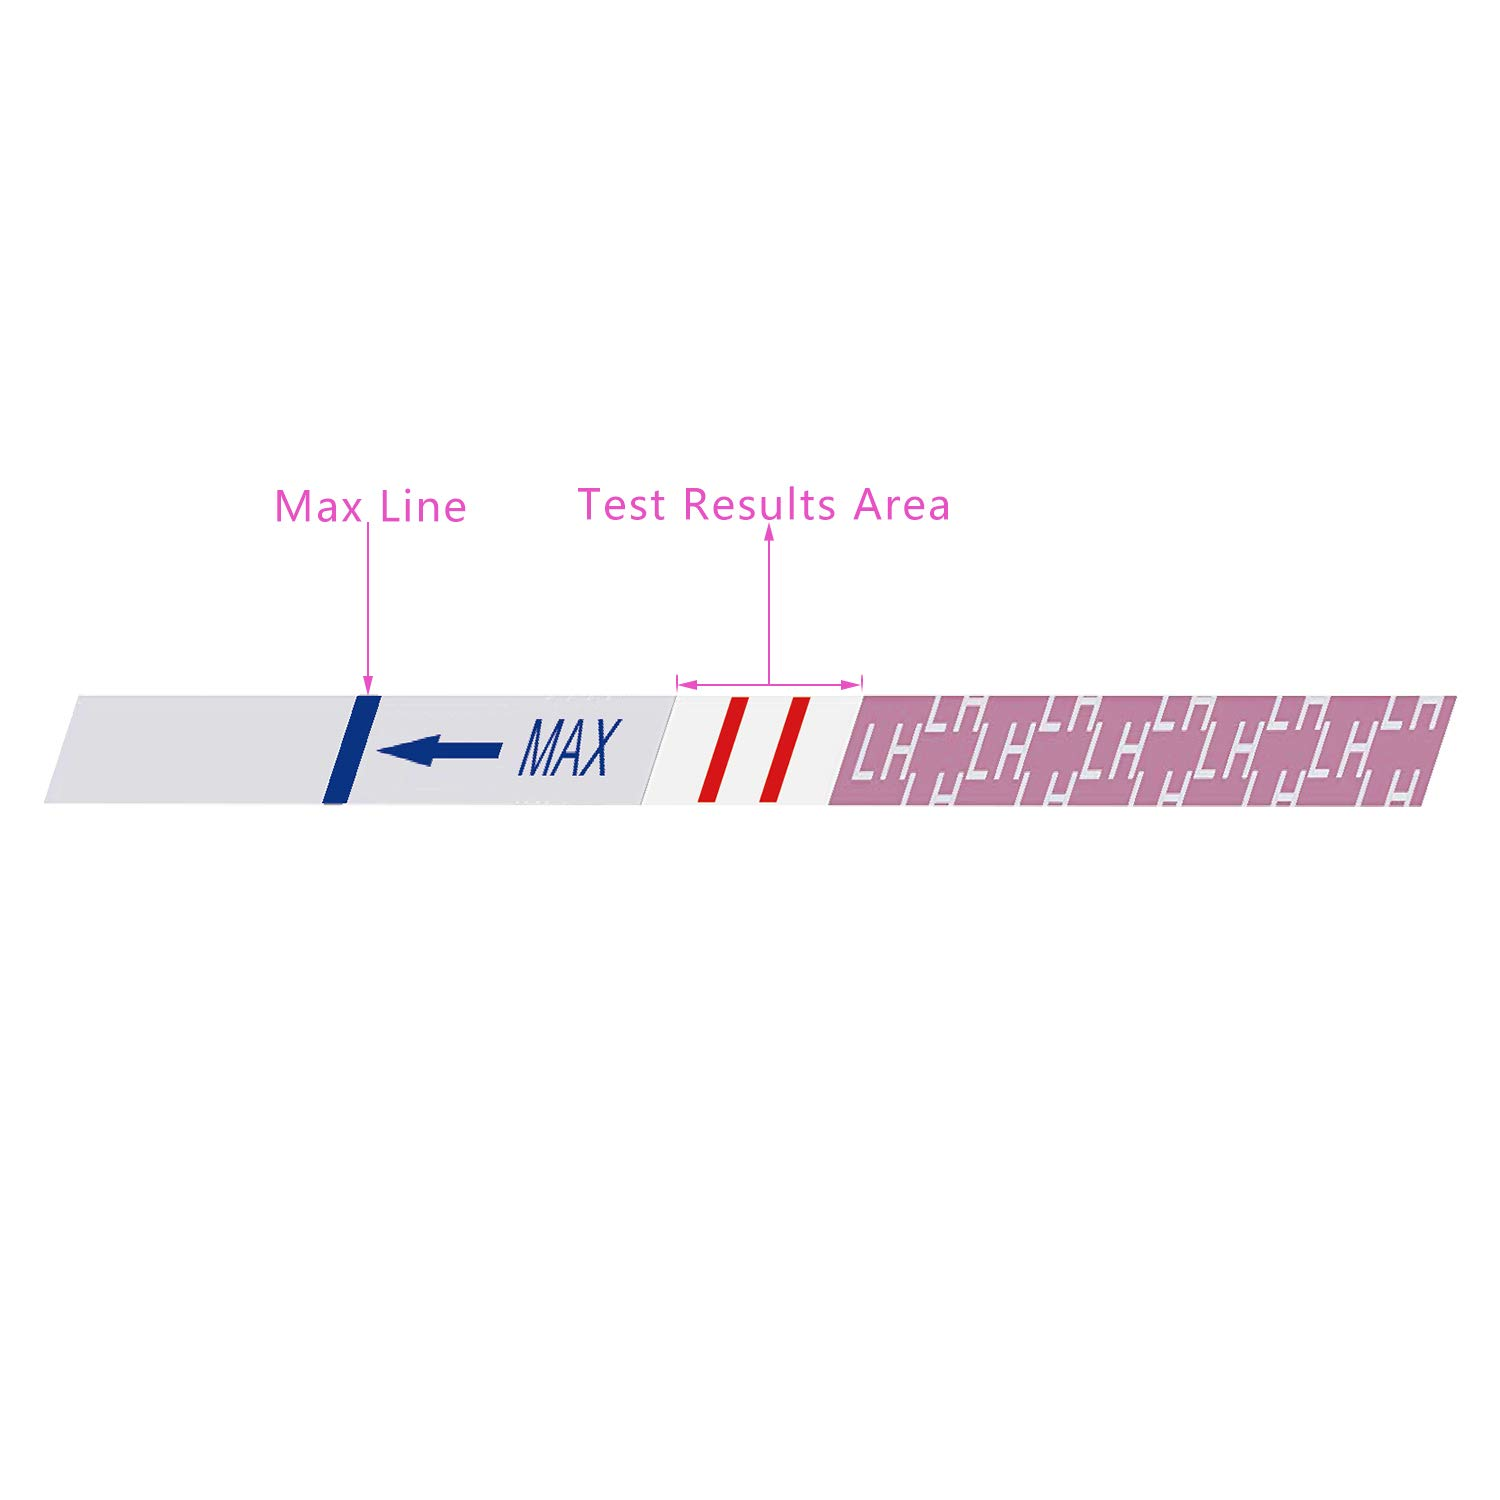 50 Count Ovulation Test Strips Lovia Ovulation Predictor Kit for Home Use Over 99/% Accuracy 25mIU//ml Accurately Track LH Surge Ovulation Tests